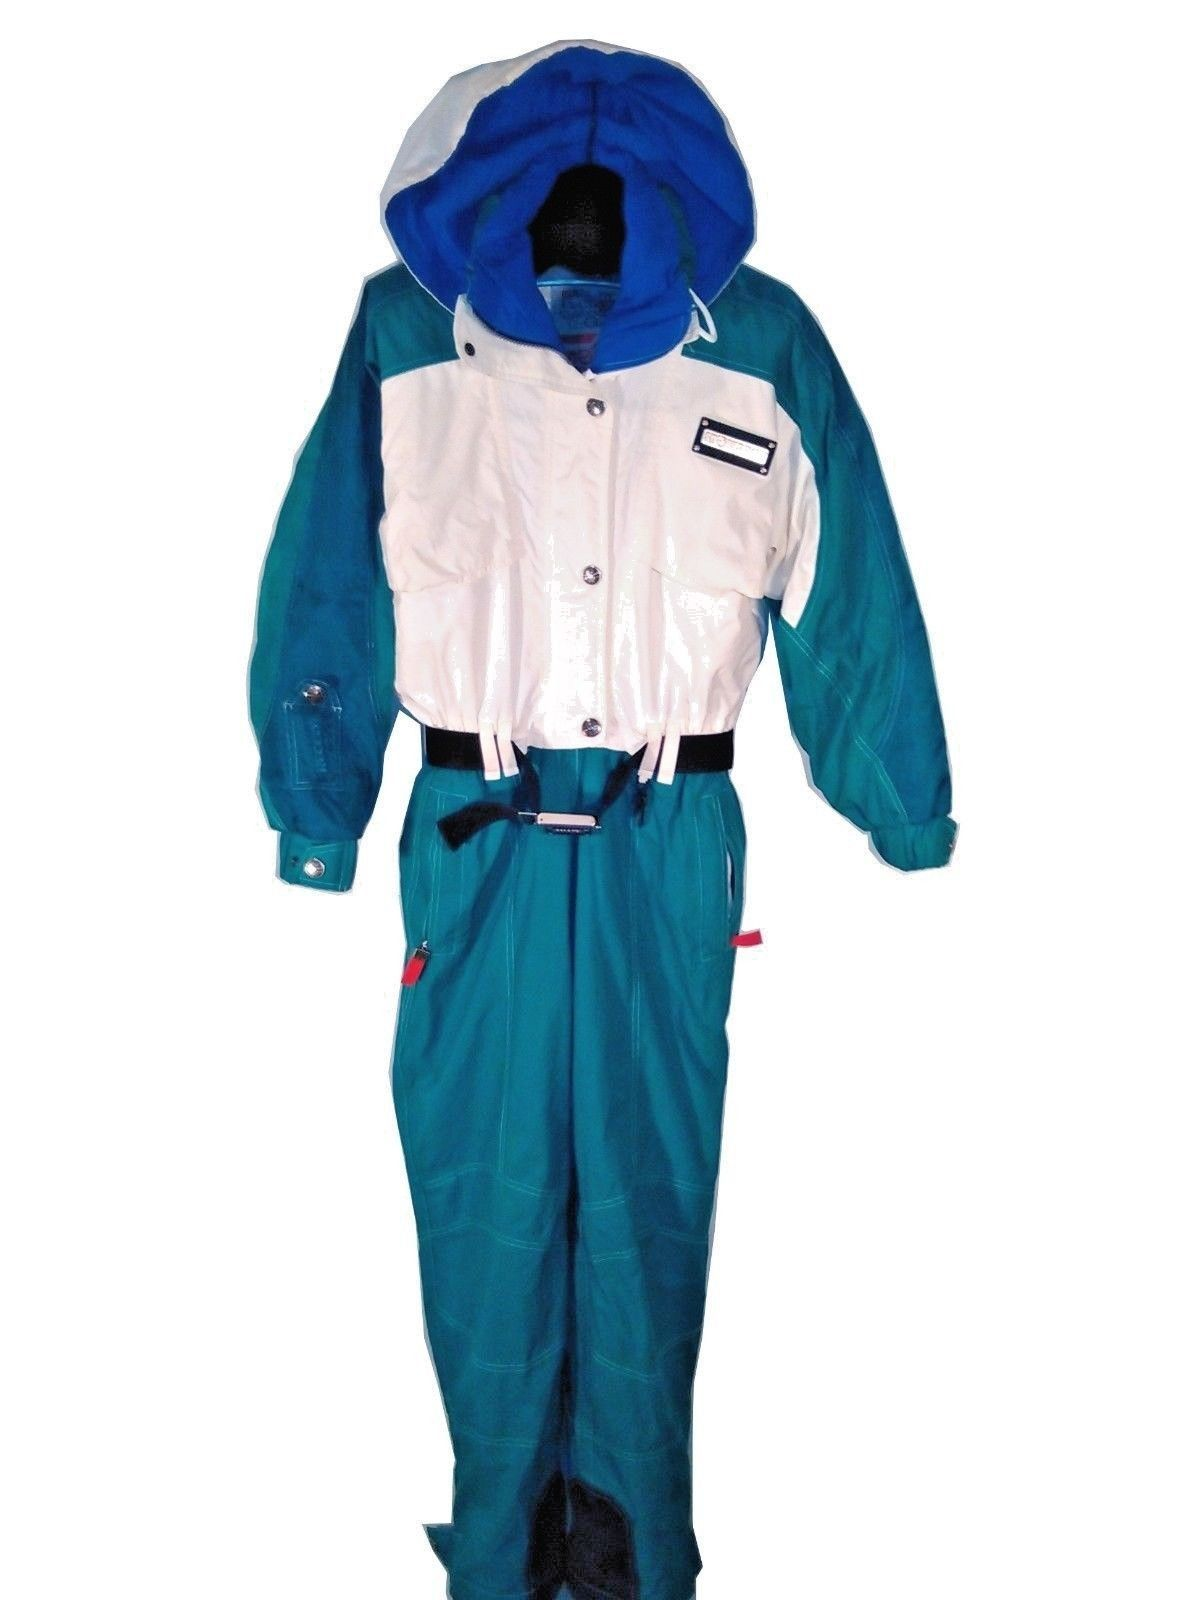 SCHOFFEL SNOW POWER GOR-TEX SNOWSUIT RECCO WOMEN'S SIZE 10 SKI SNOWBOARDING (I)